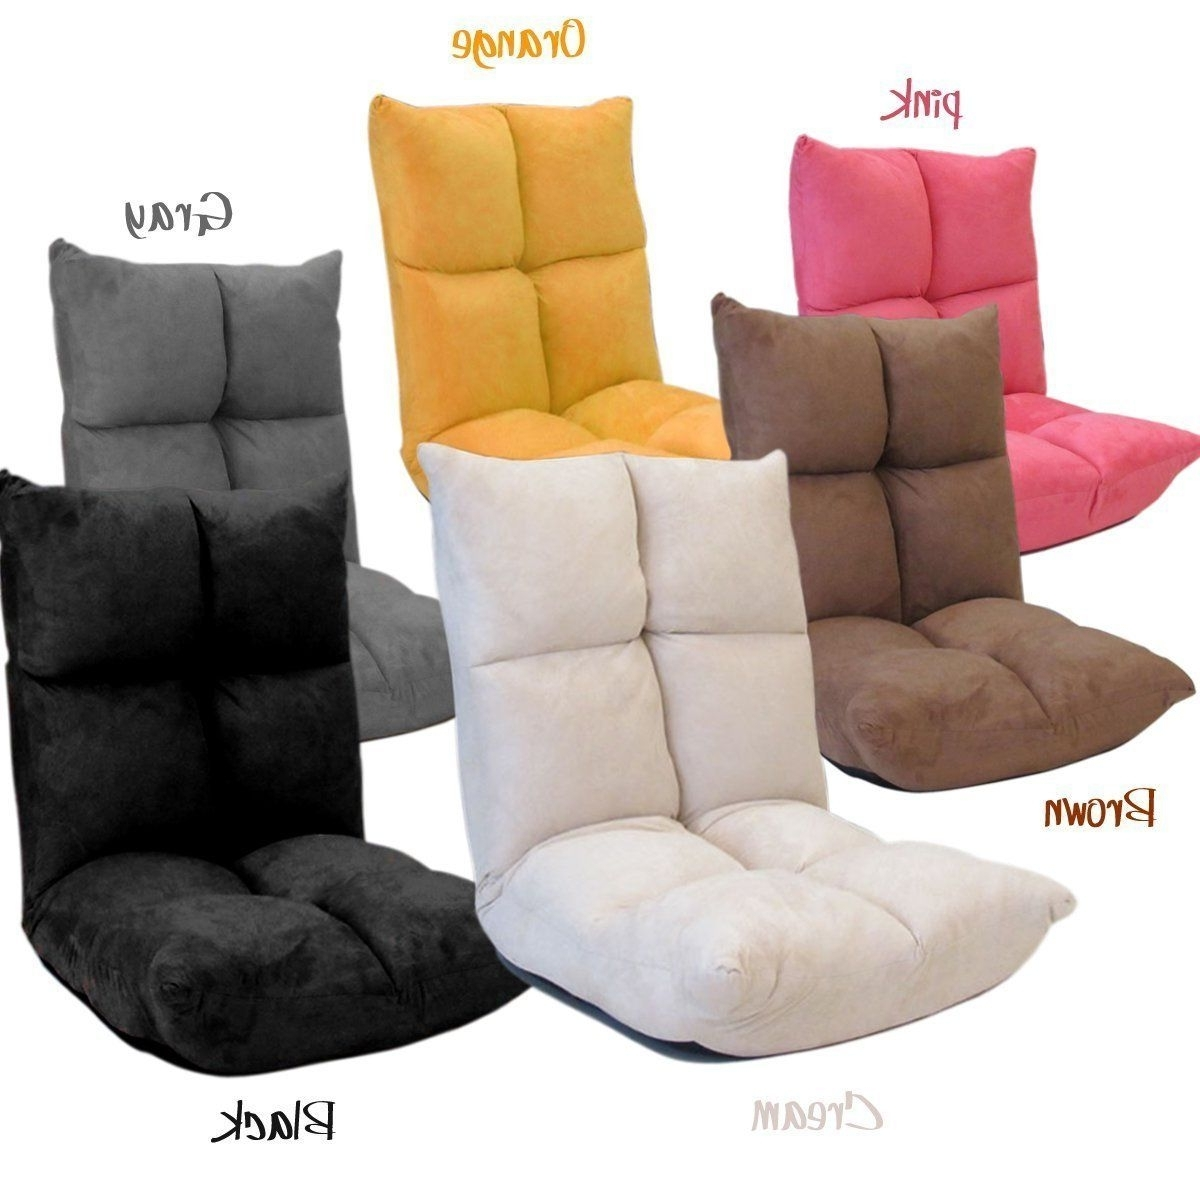 Fold Up Sofa Chairs For Preferred Futon Chair/gaming Chair ~ The Back Rest Can Be Adjusted Into (Gallery 5 of 15)